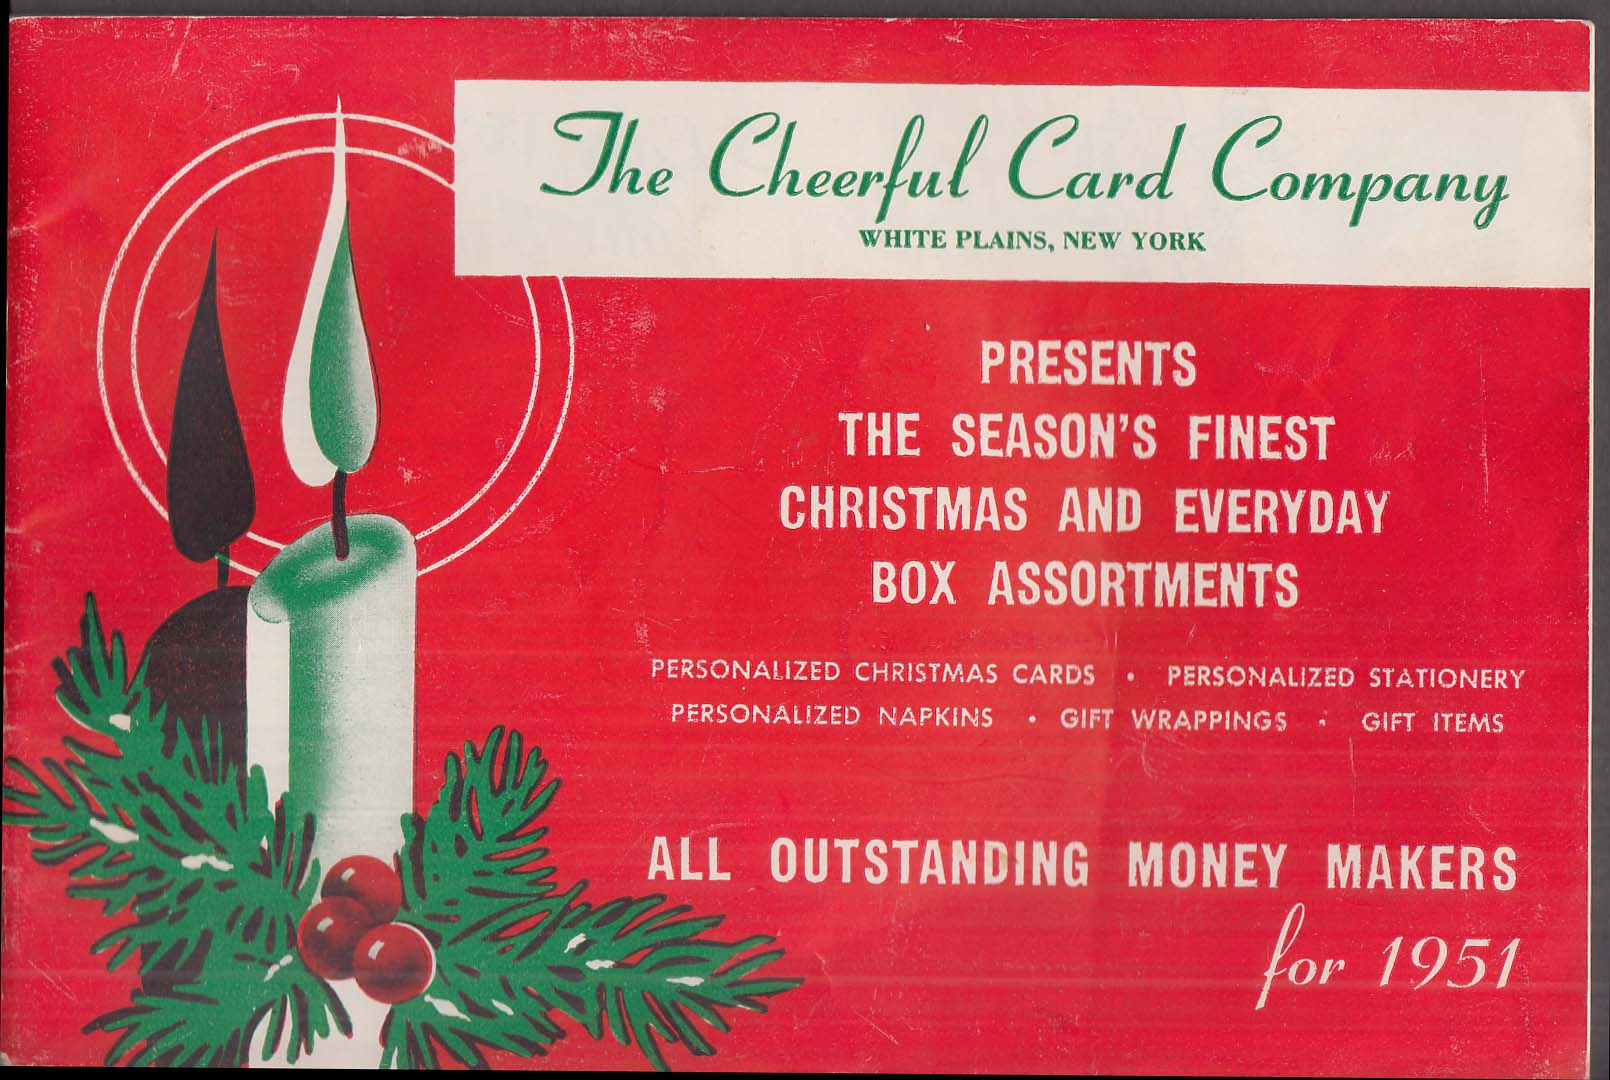 Cheerful card company catalog 1951 greeting cards stationery gift cheerful card company catalog 1951 greeting cards stationery gift items m4hsunfo